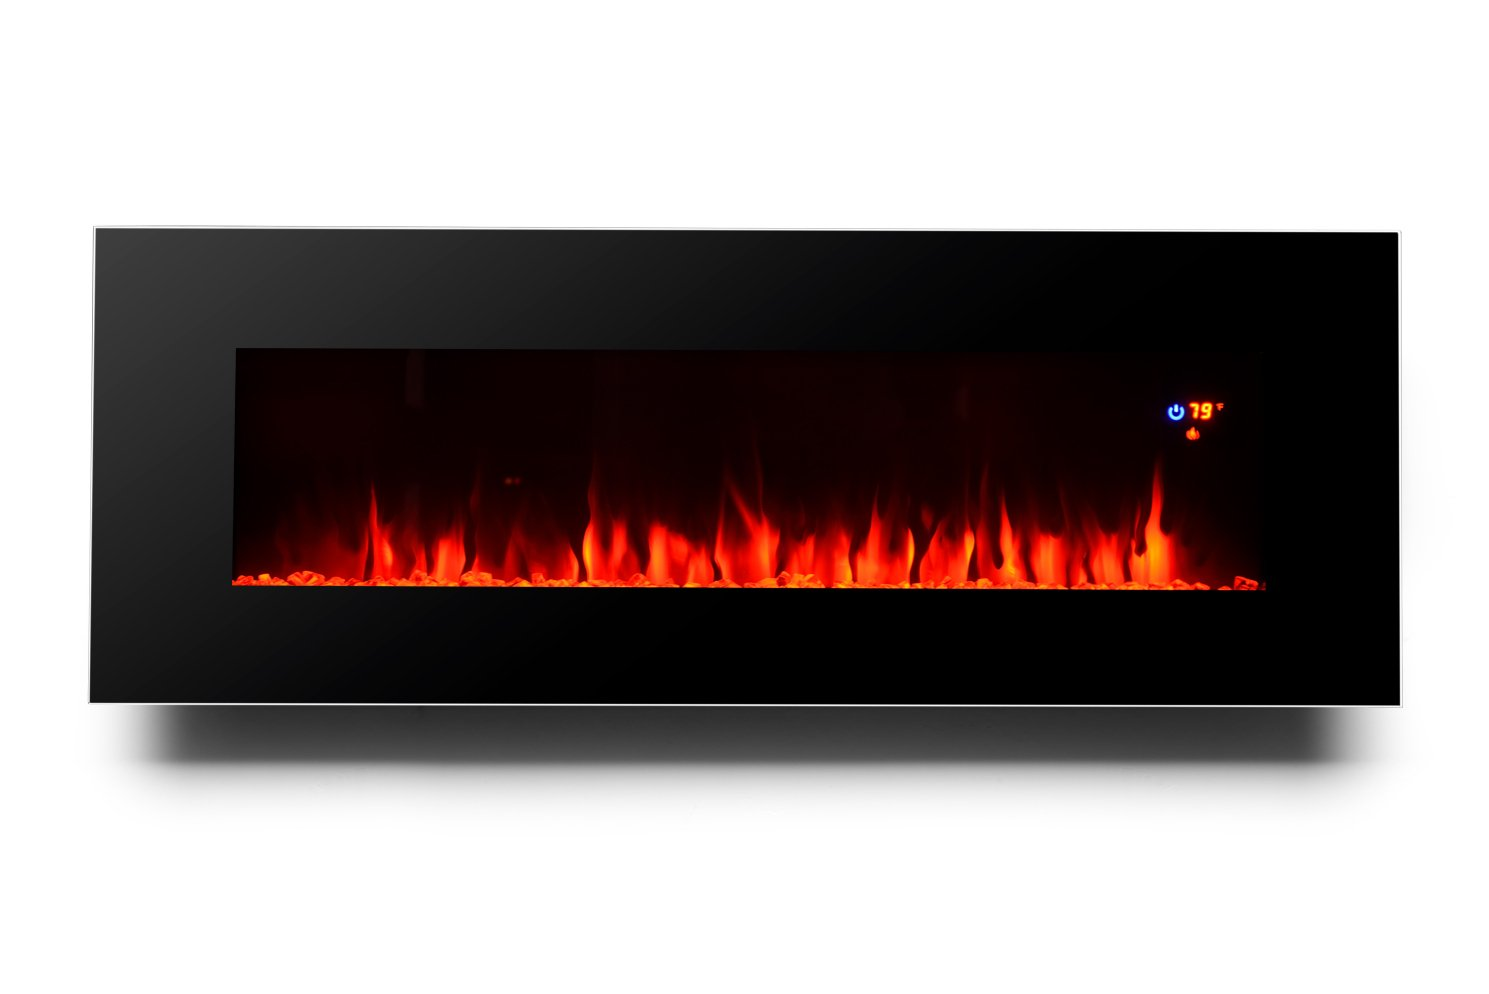 wall mount electric fireplace heater. Amazon.com: 3G Plus 50\ Wall Mount Electric Fireplace Heater R